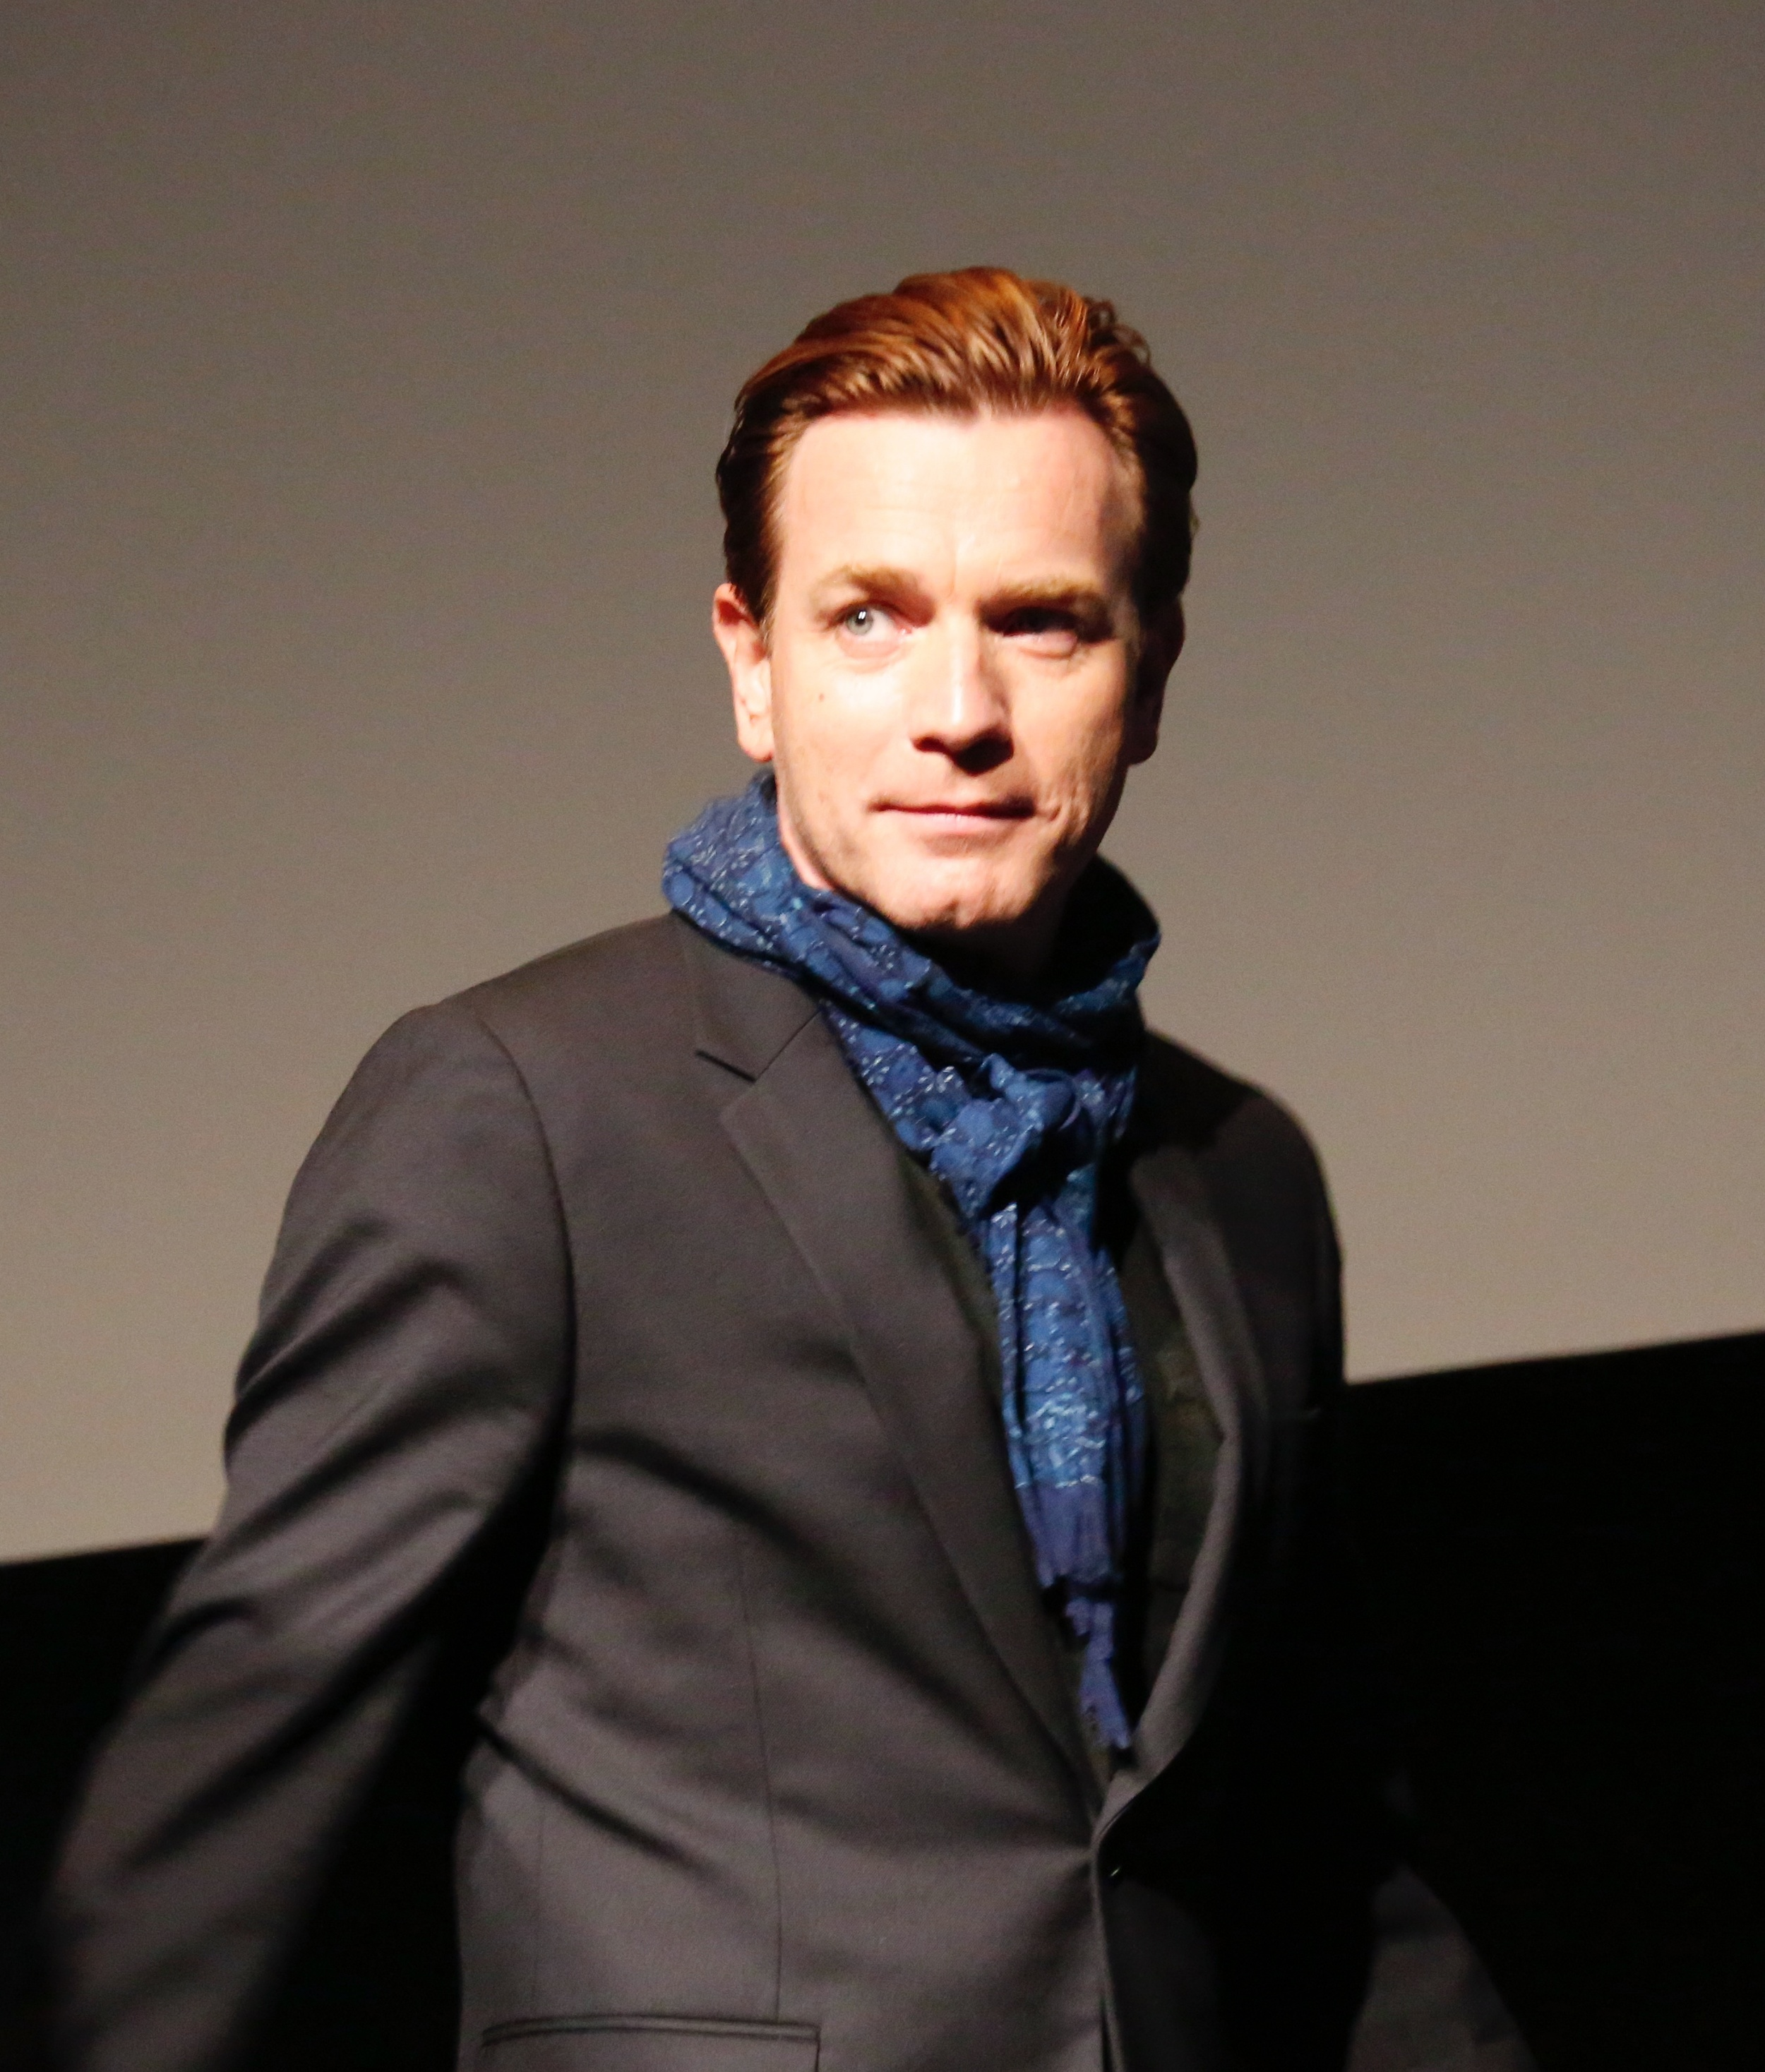 My photo of Ewan McGregor at NYFF